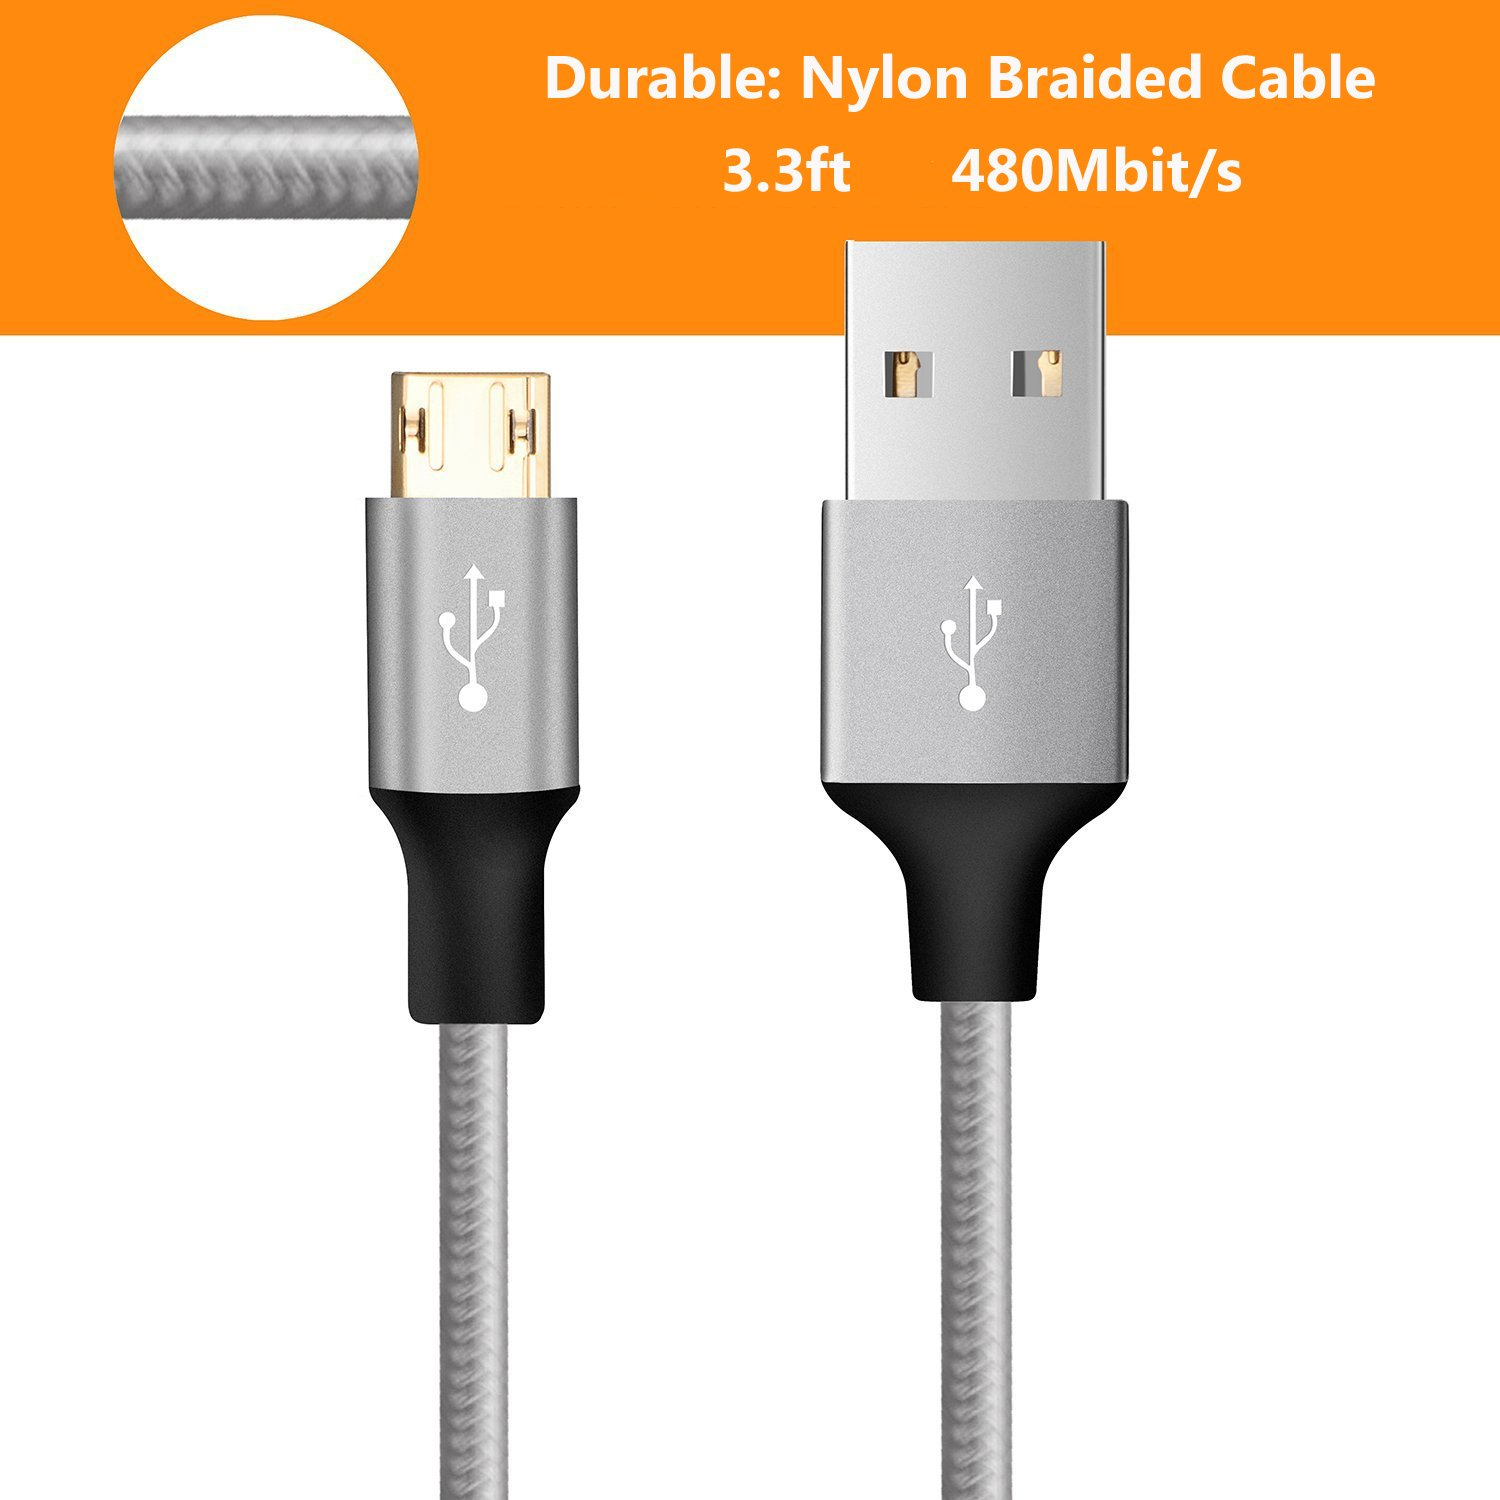 Amazon.com: Omaker Reversible Micro USB Cables (2 Pack, 3.3ft) Nylon ...